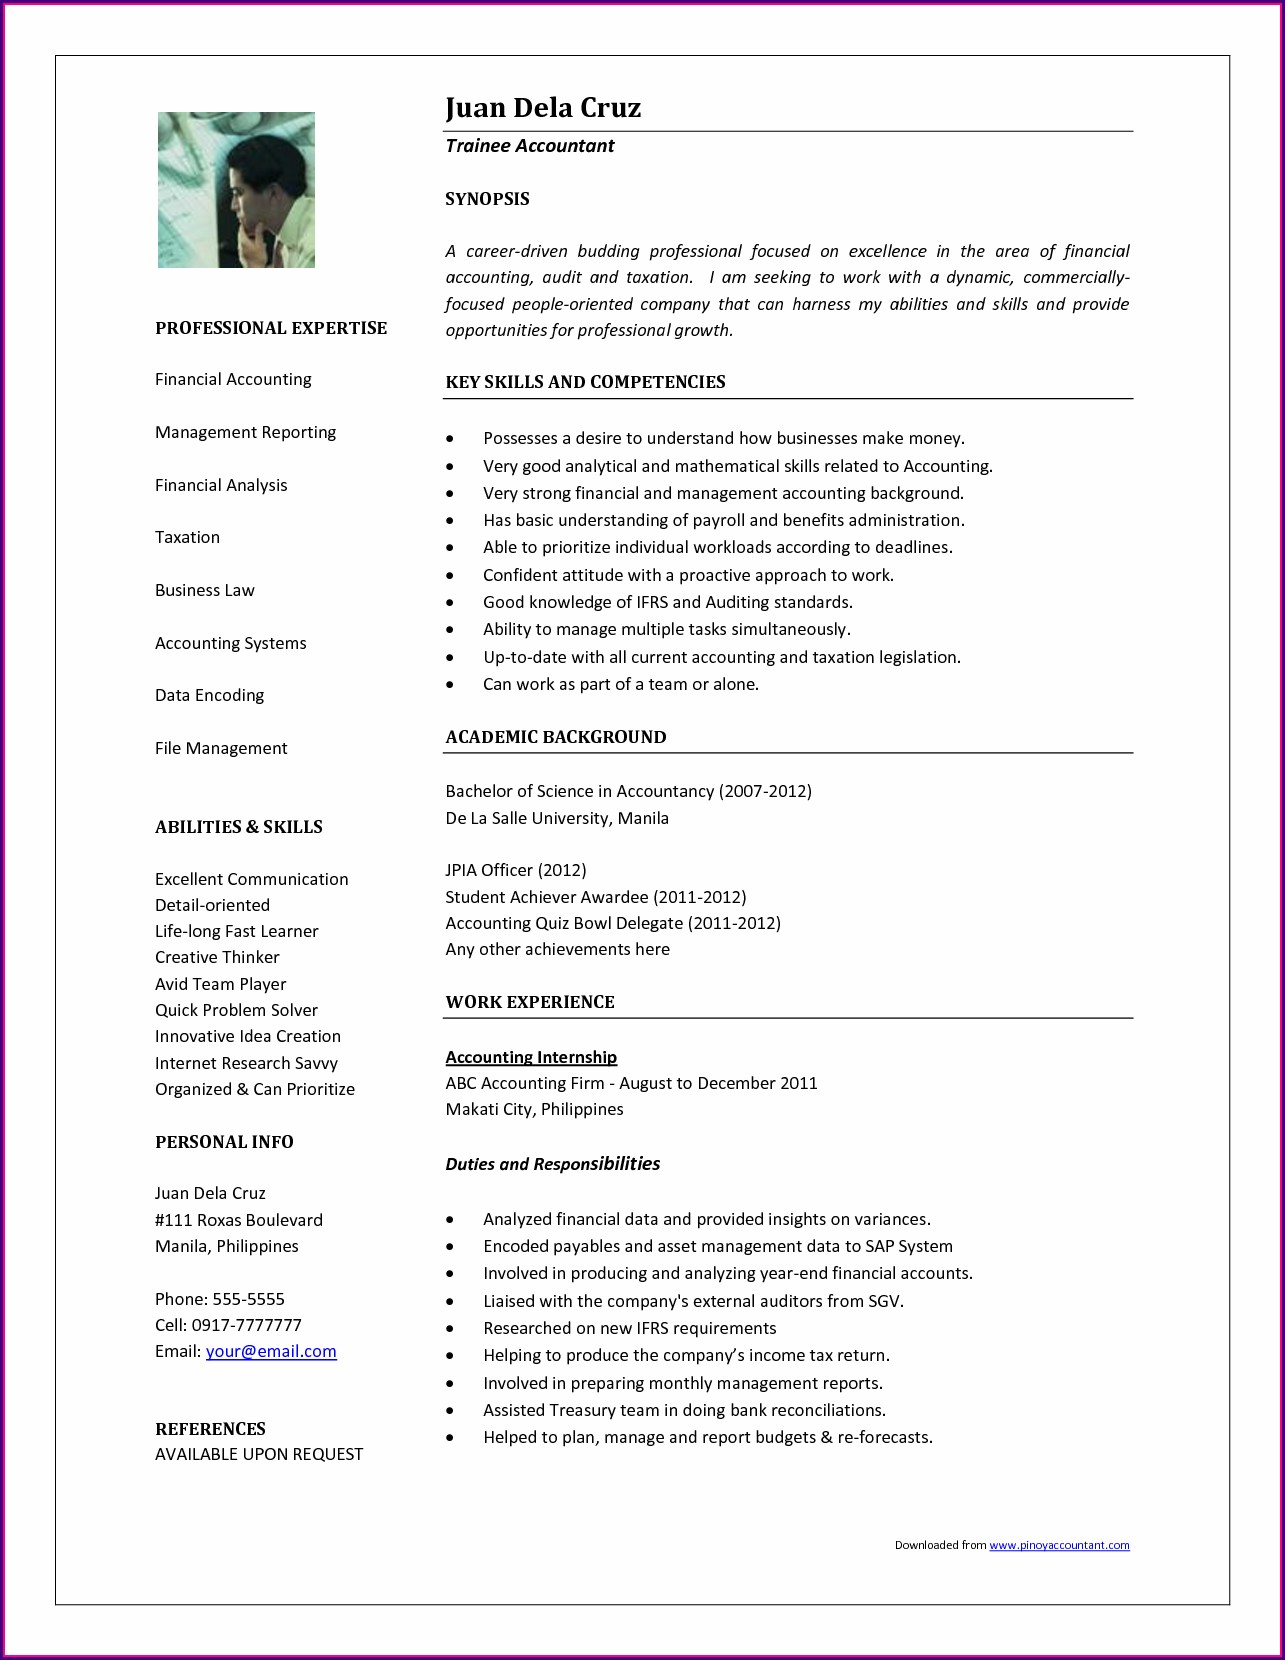 Samples Of Resumes For Accounting Jobs